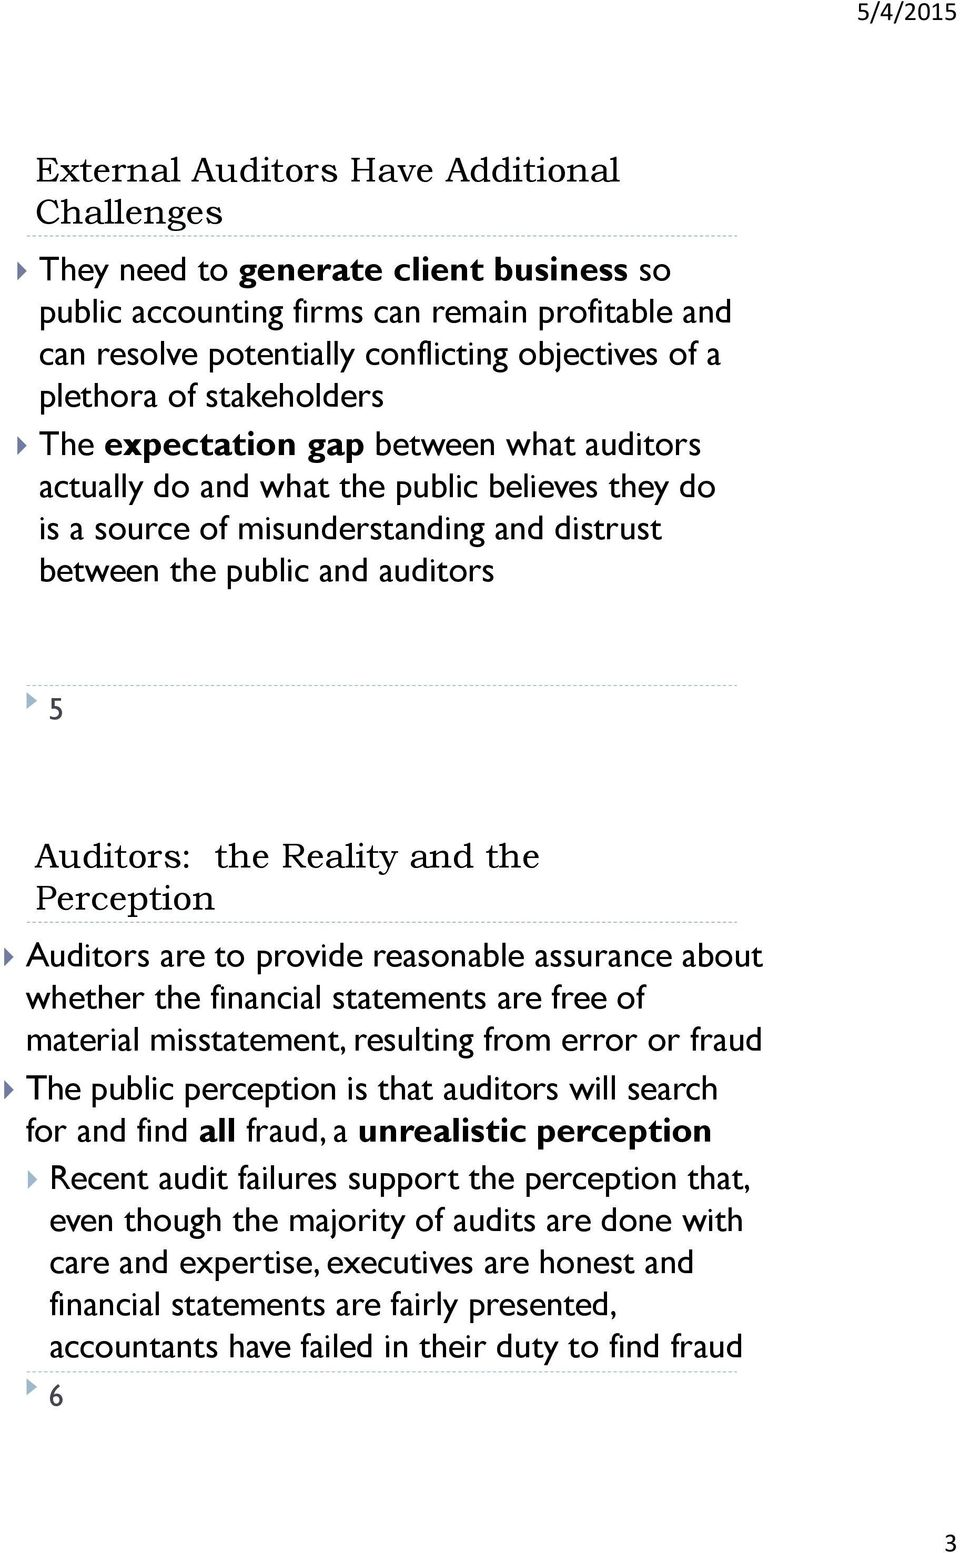 Reality and the Perception Auditors are to provide reasonable assurance about whether the financial statements are free of material misstatement, resulting from error or fraud The public perception